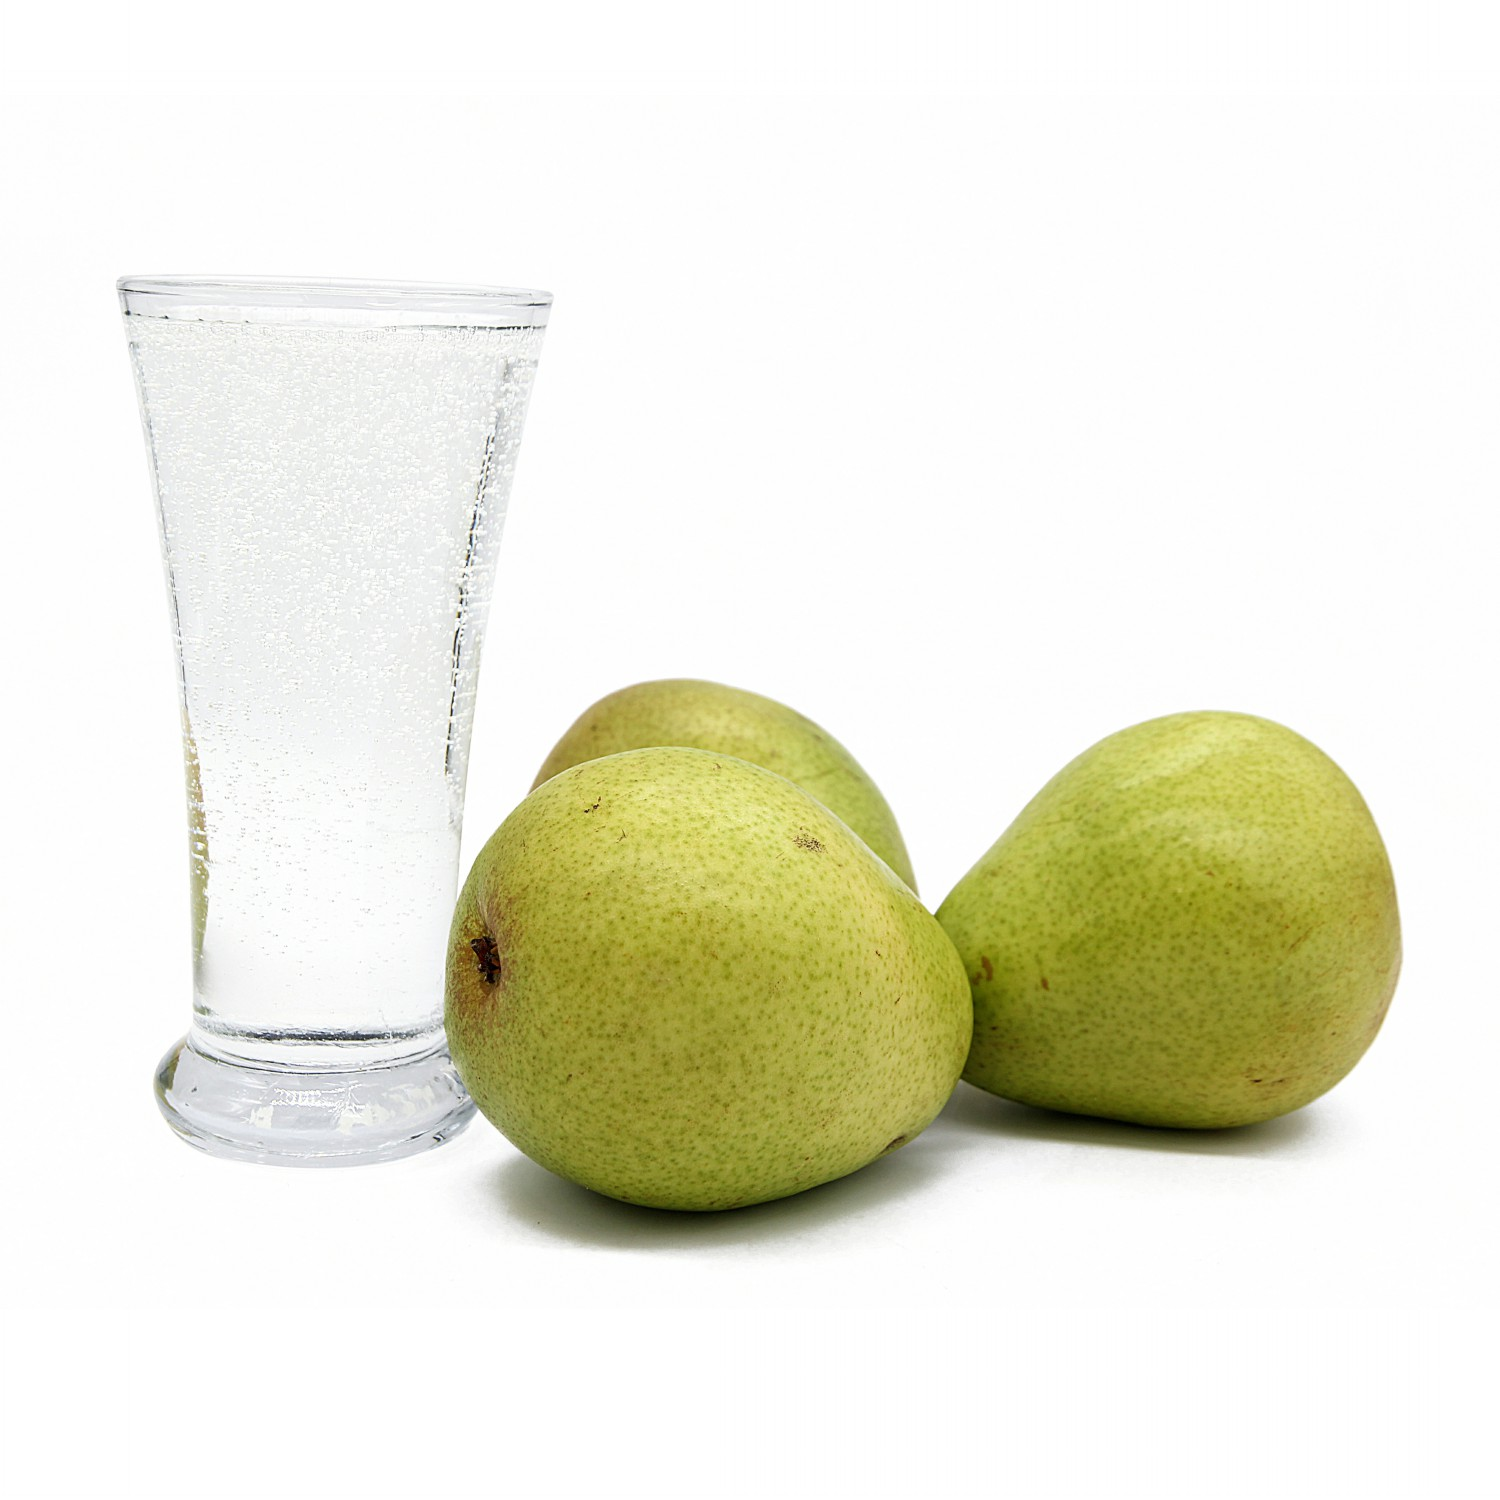 Deionized pear juice concentrate